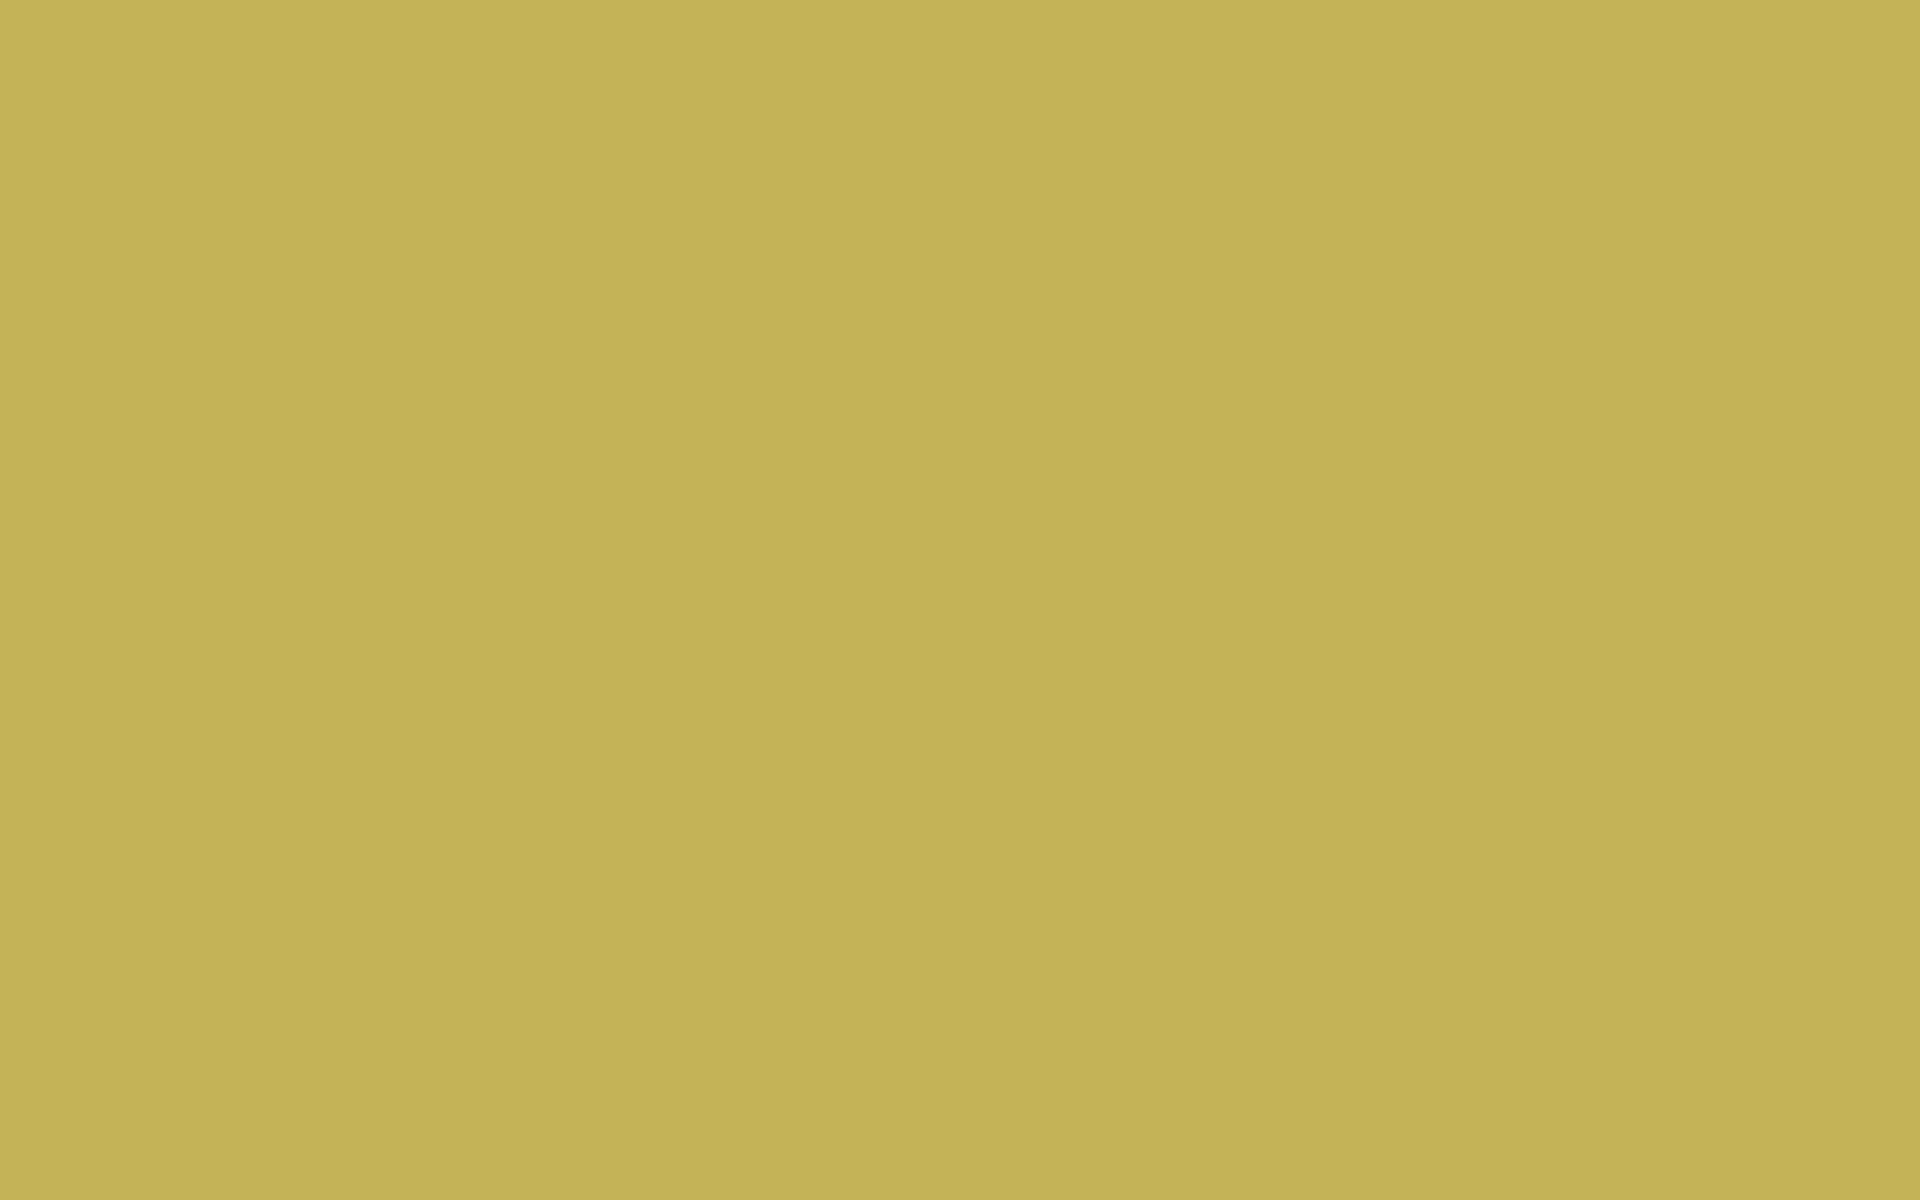 1920x1200 Vegas Gold Solid Color Background